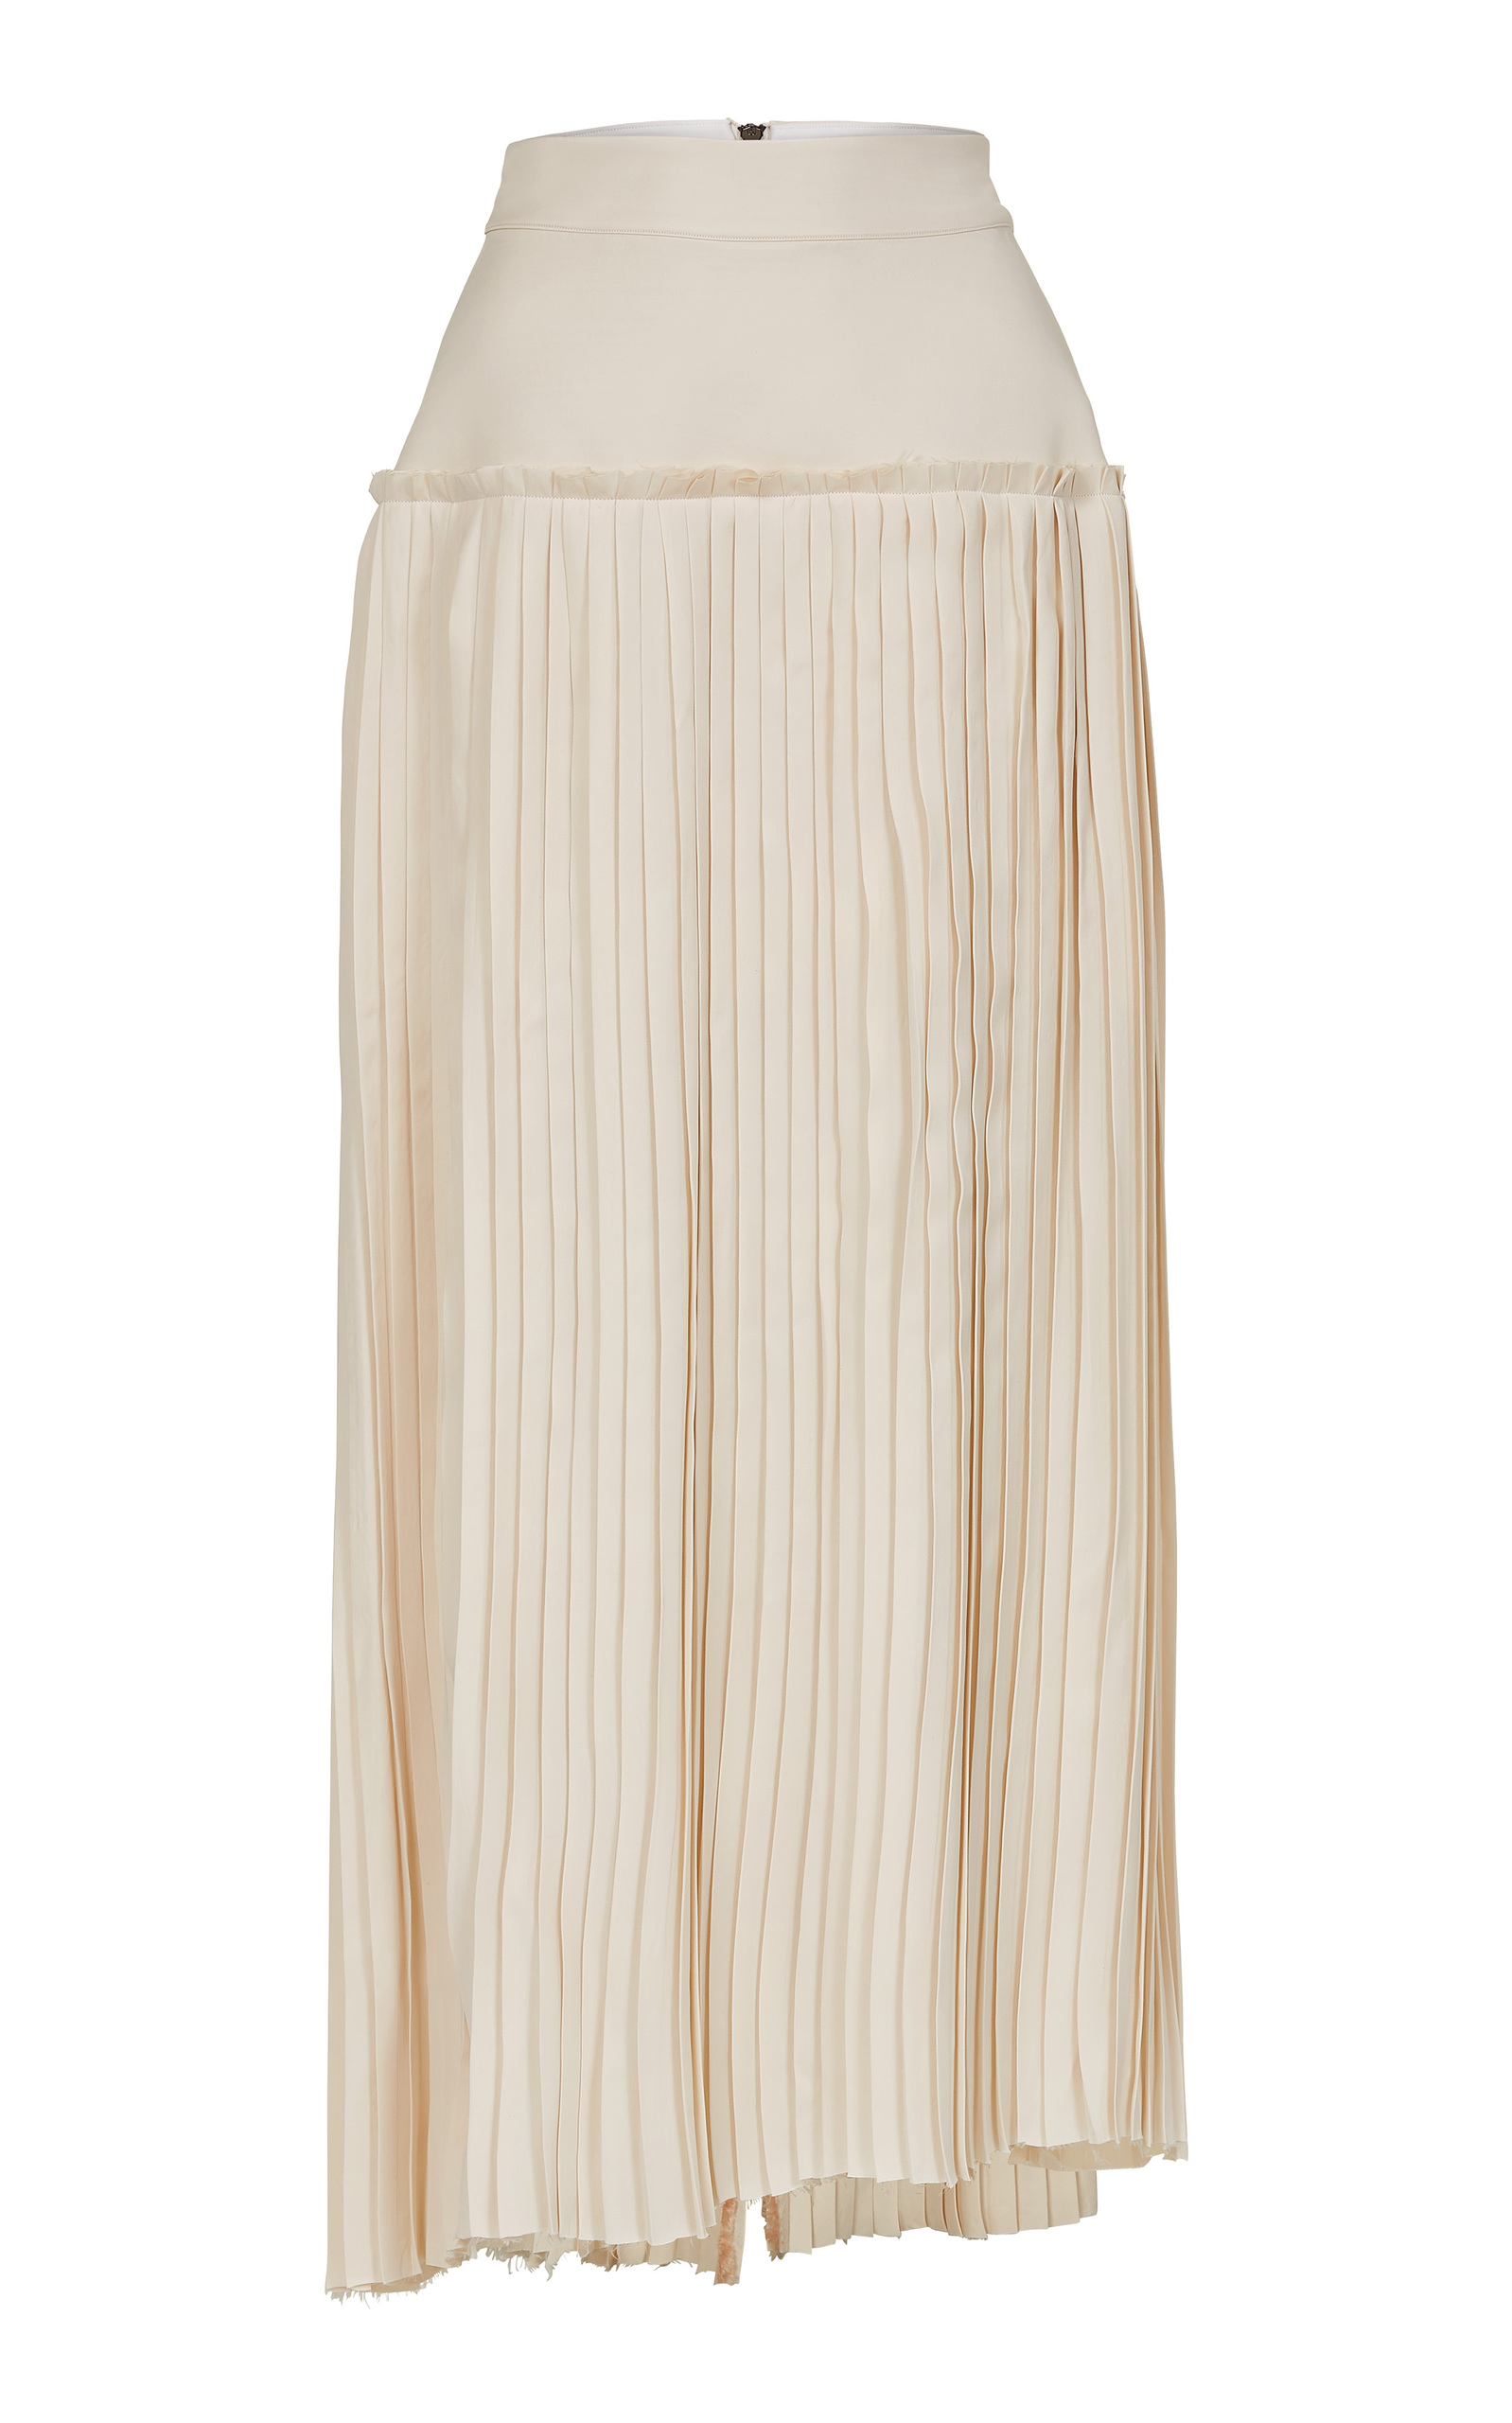 Maticevski Decency pleated skirt Outlet Visit uuXz611a